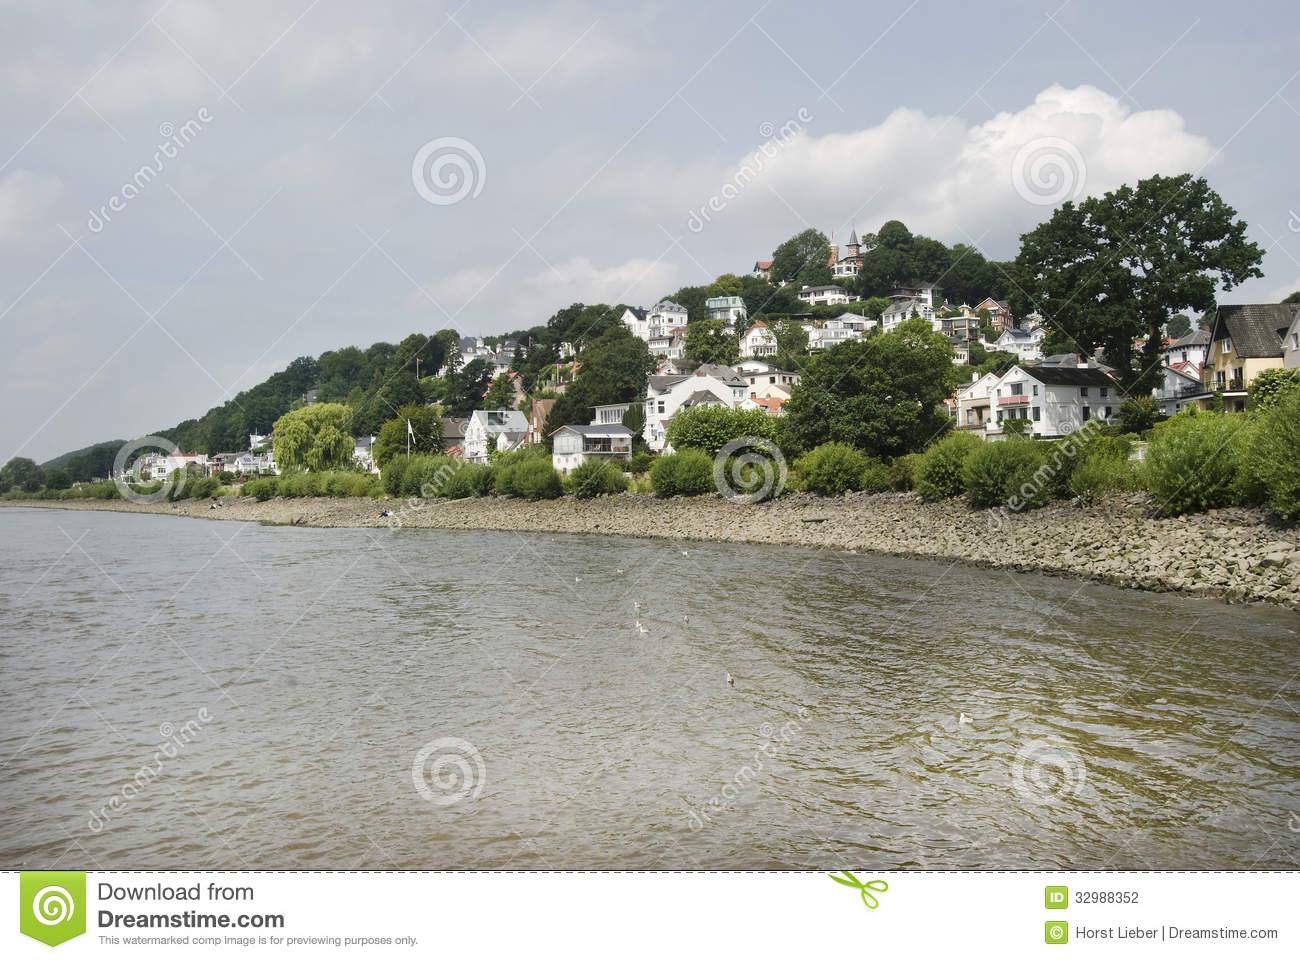 Stock photo hamburg germany riverside new - Blankenese Hamburg Germany 02 Stock Photography